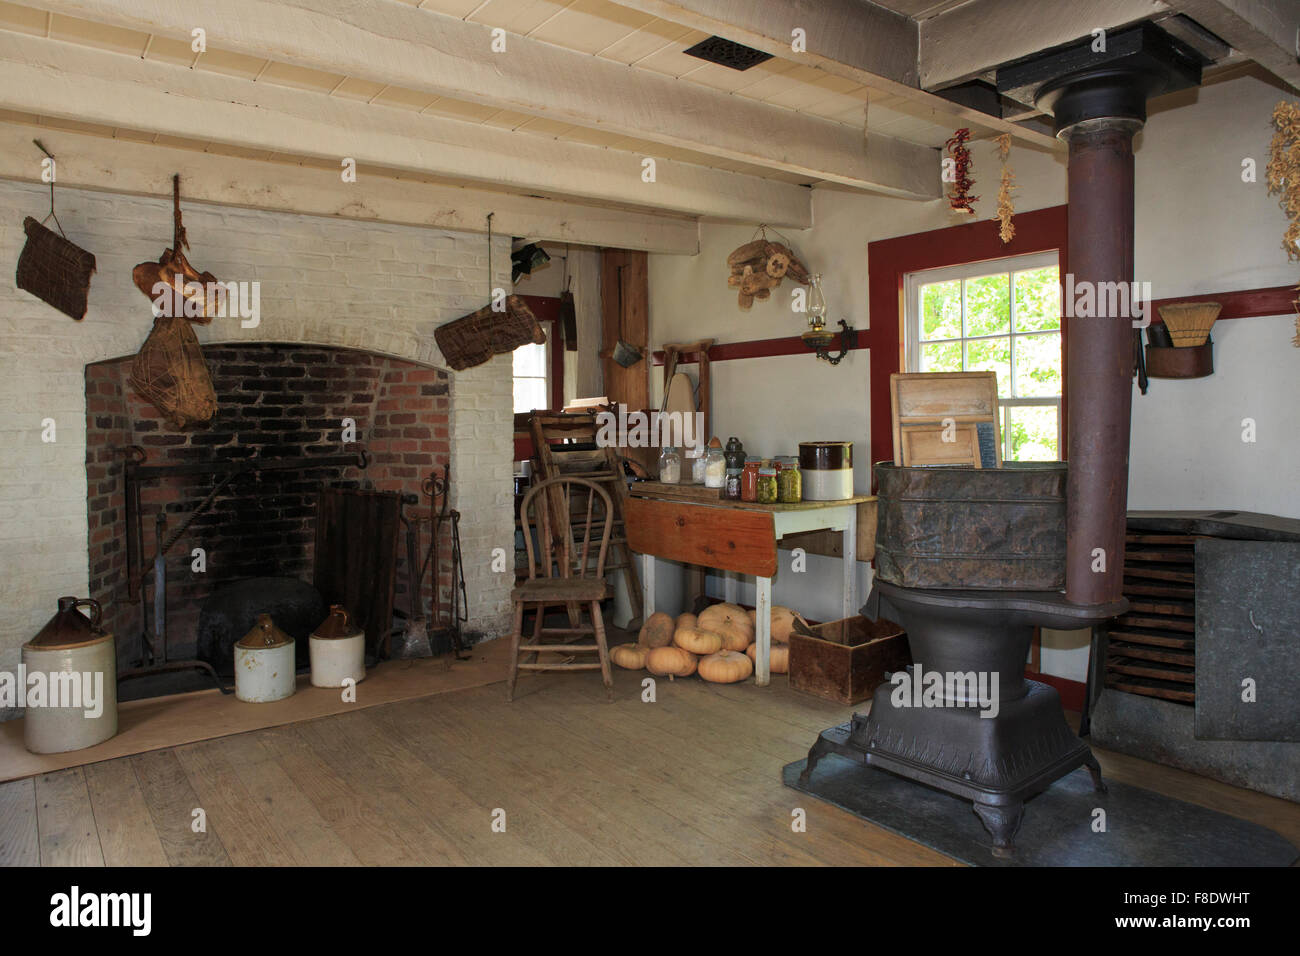 Summer kitchen at an old farmhouse Stock Photo, Royalty Free Image ...